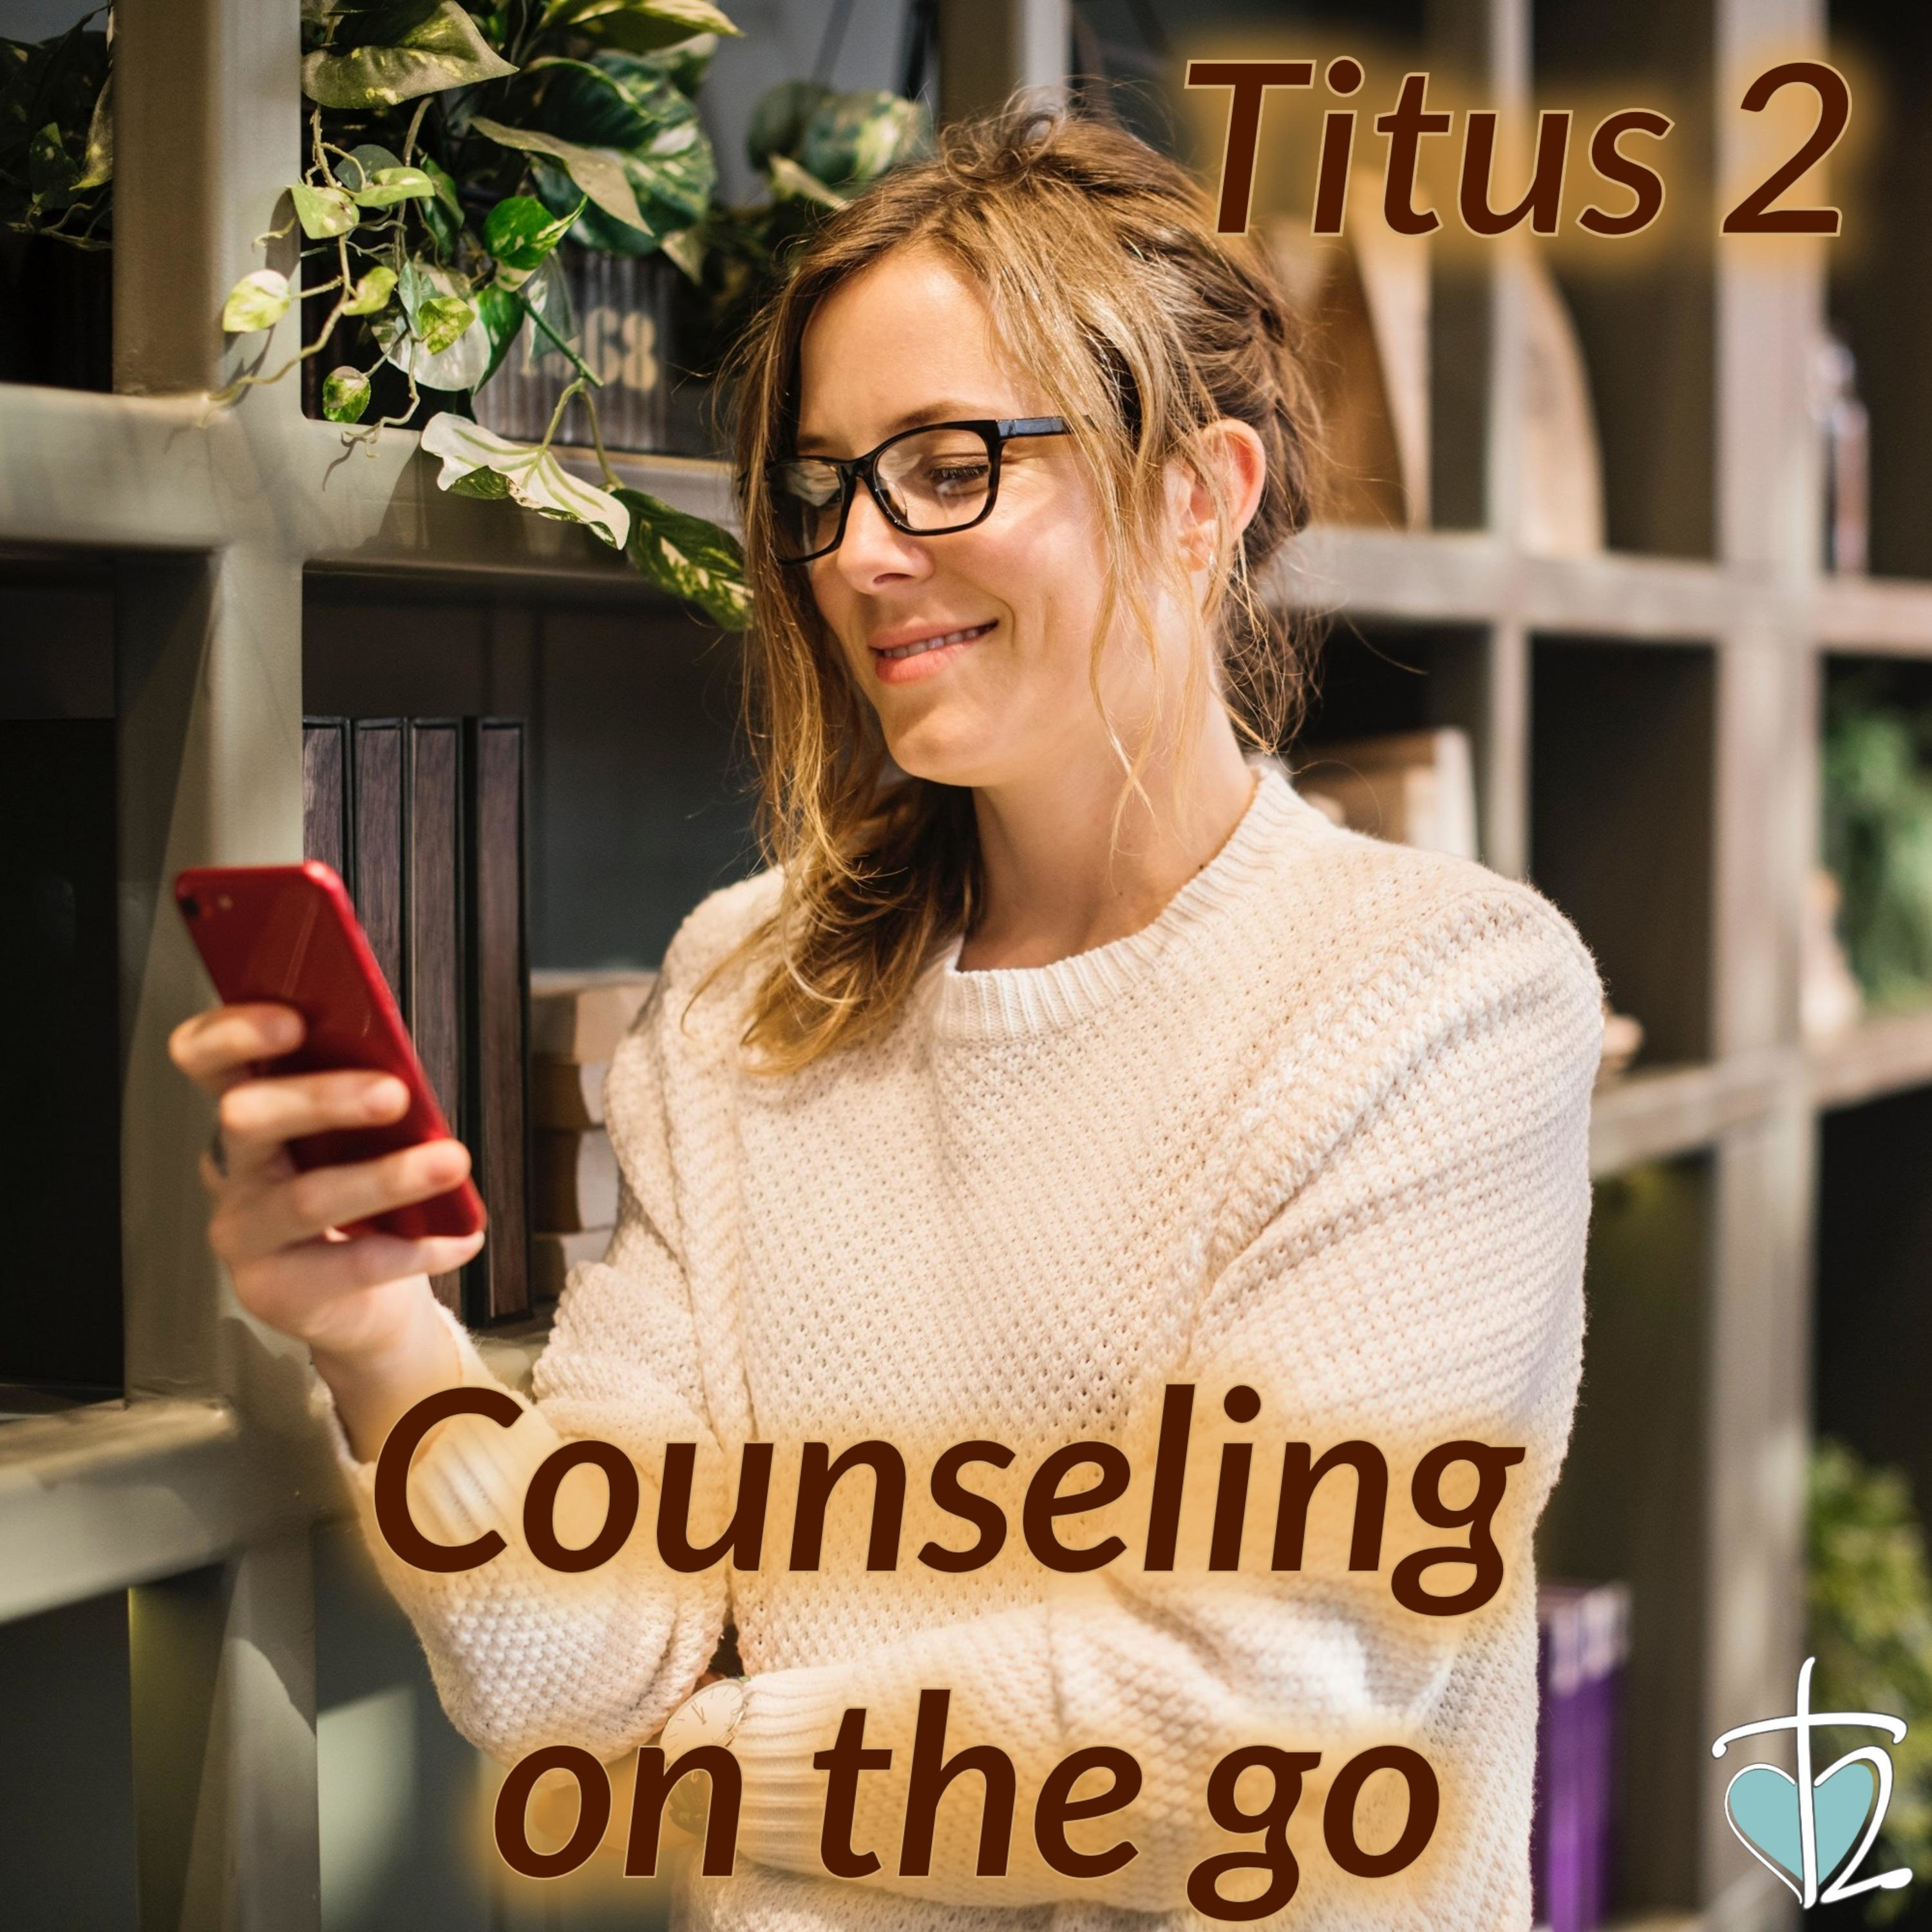 Titus 2 Counseling on the go